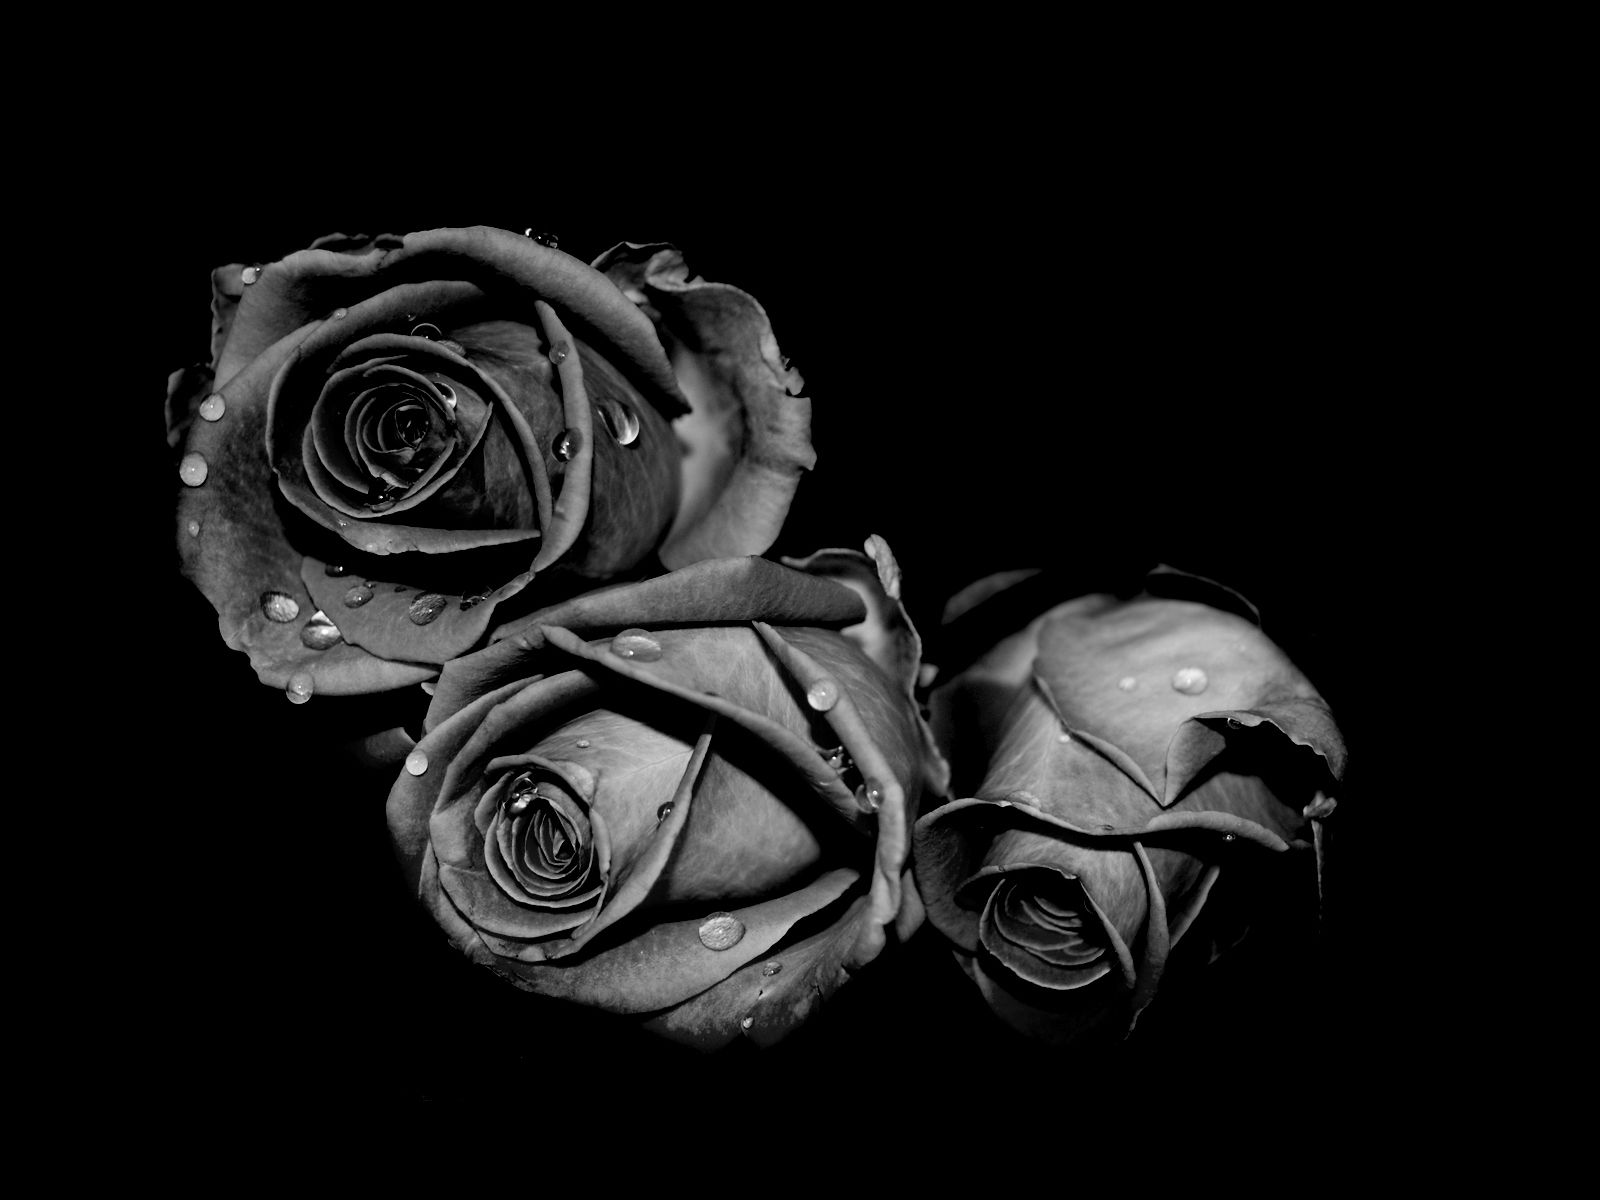 Roses Description Fading Black Still Beauitful Black And White